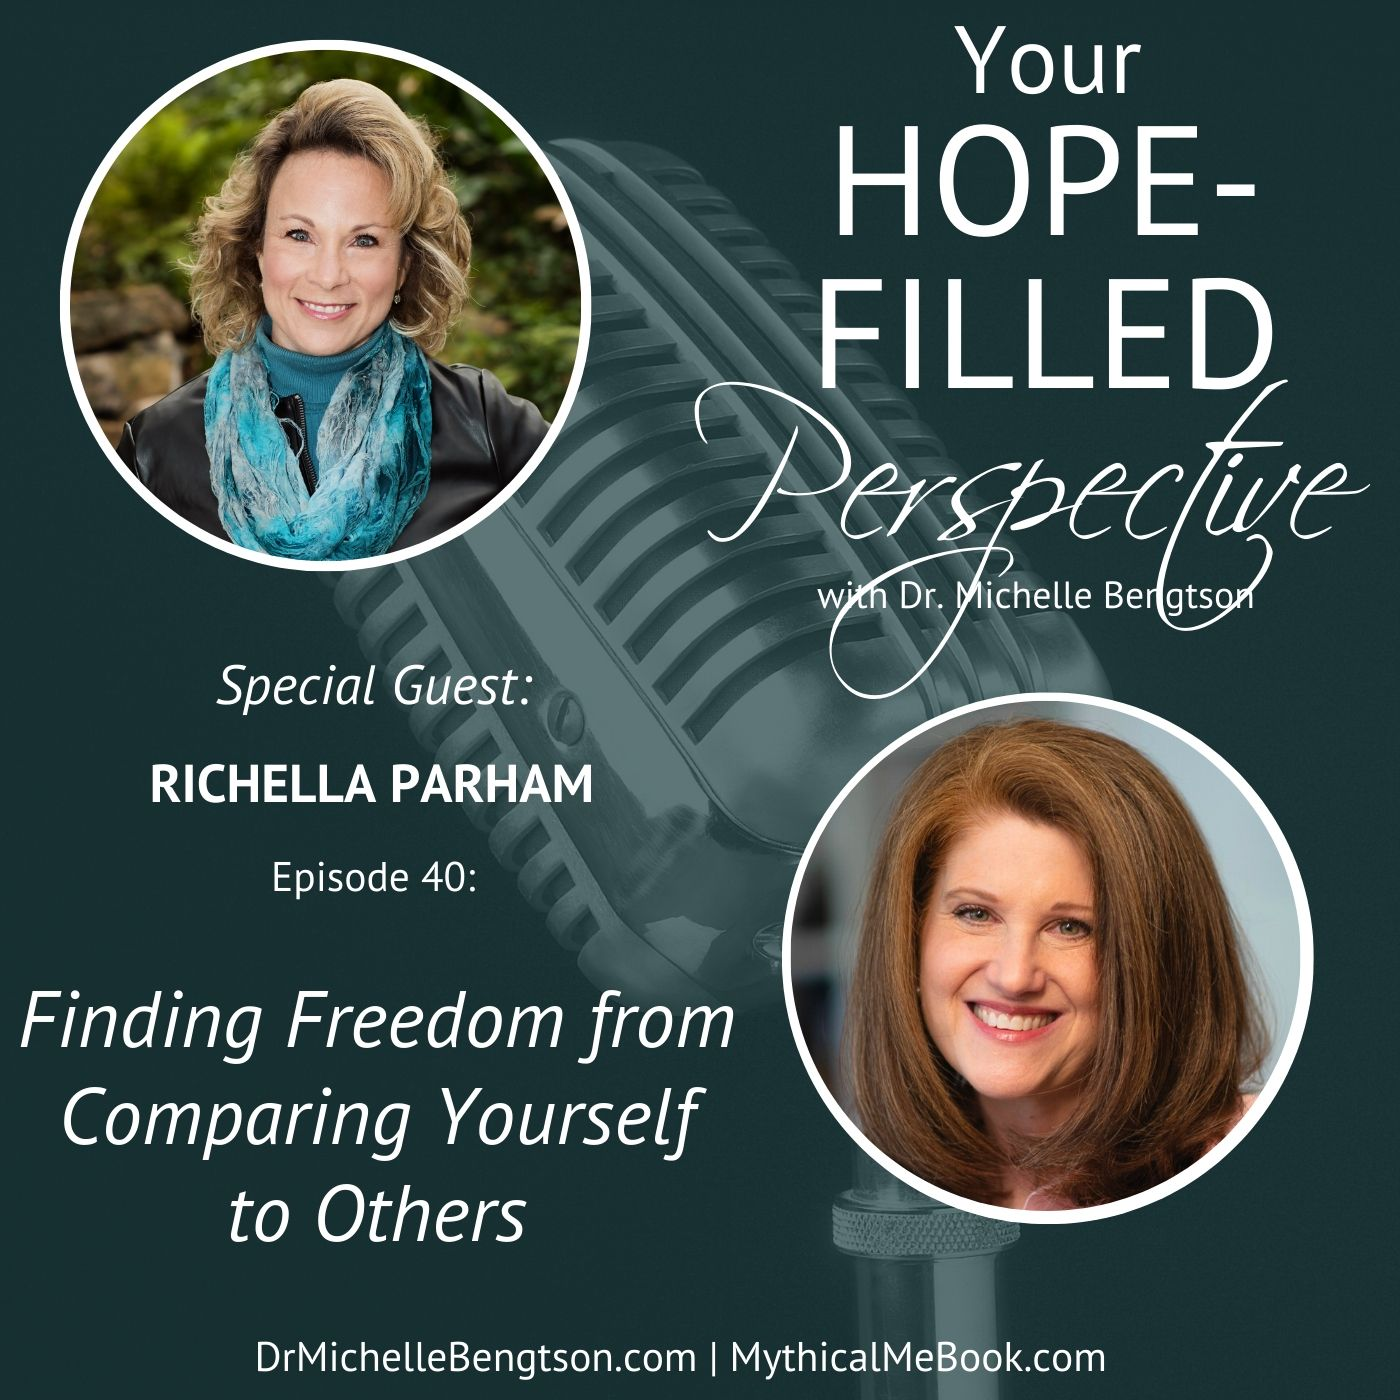 040 Finding Freedom from Comparing Yourself to Others show art